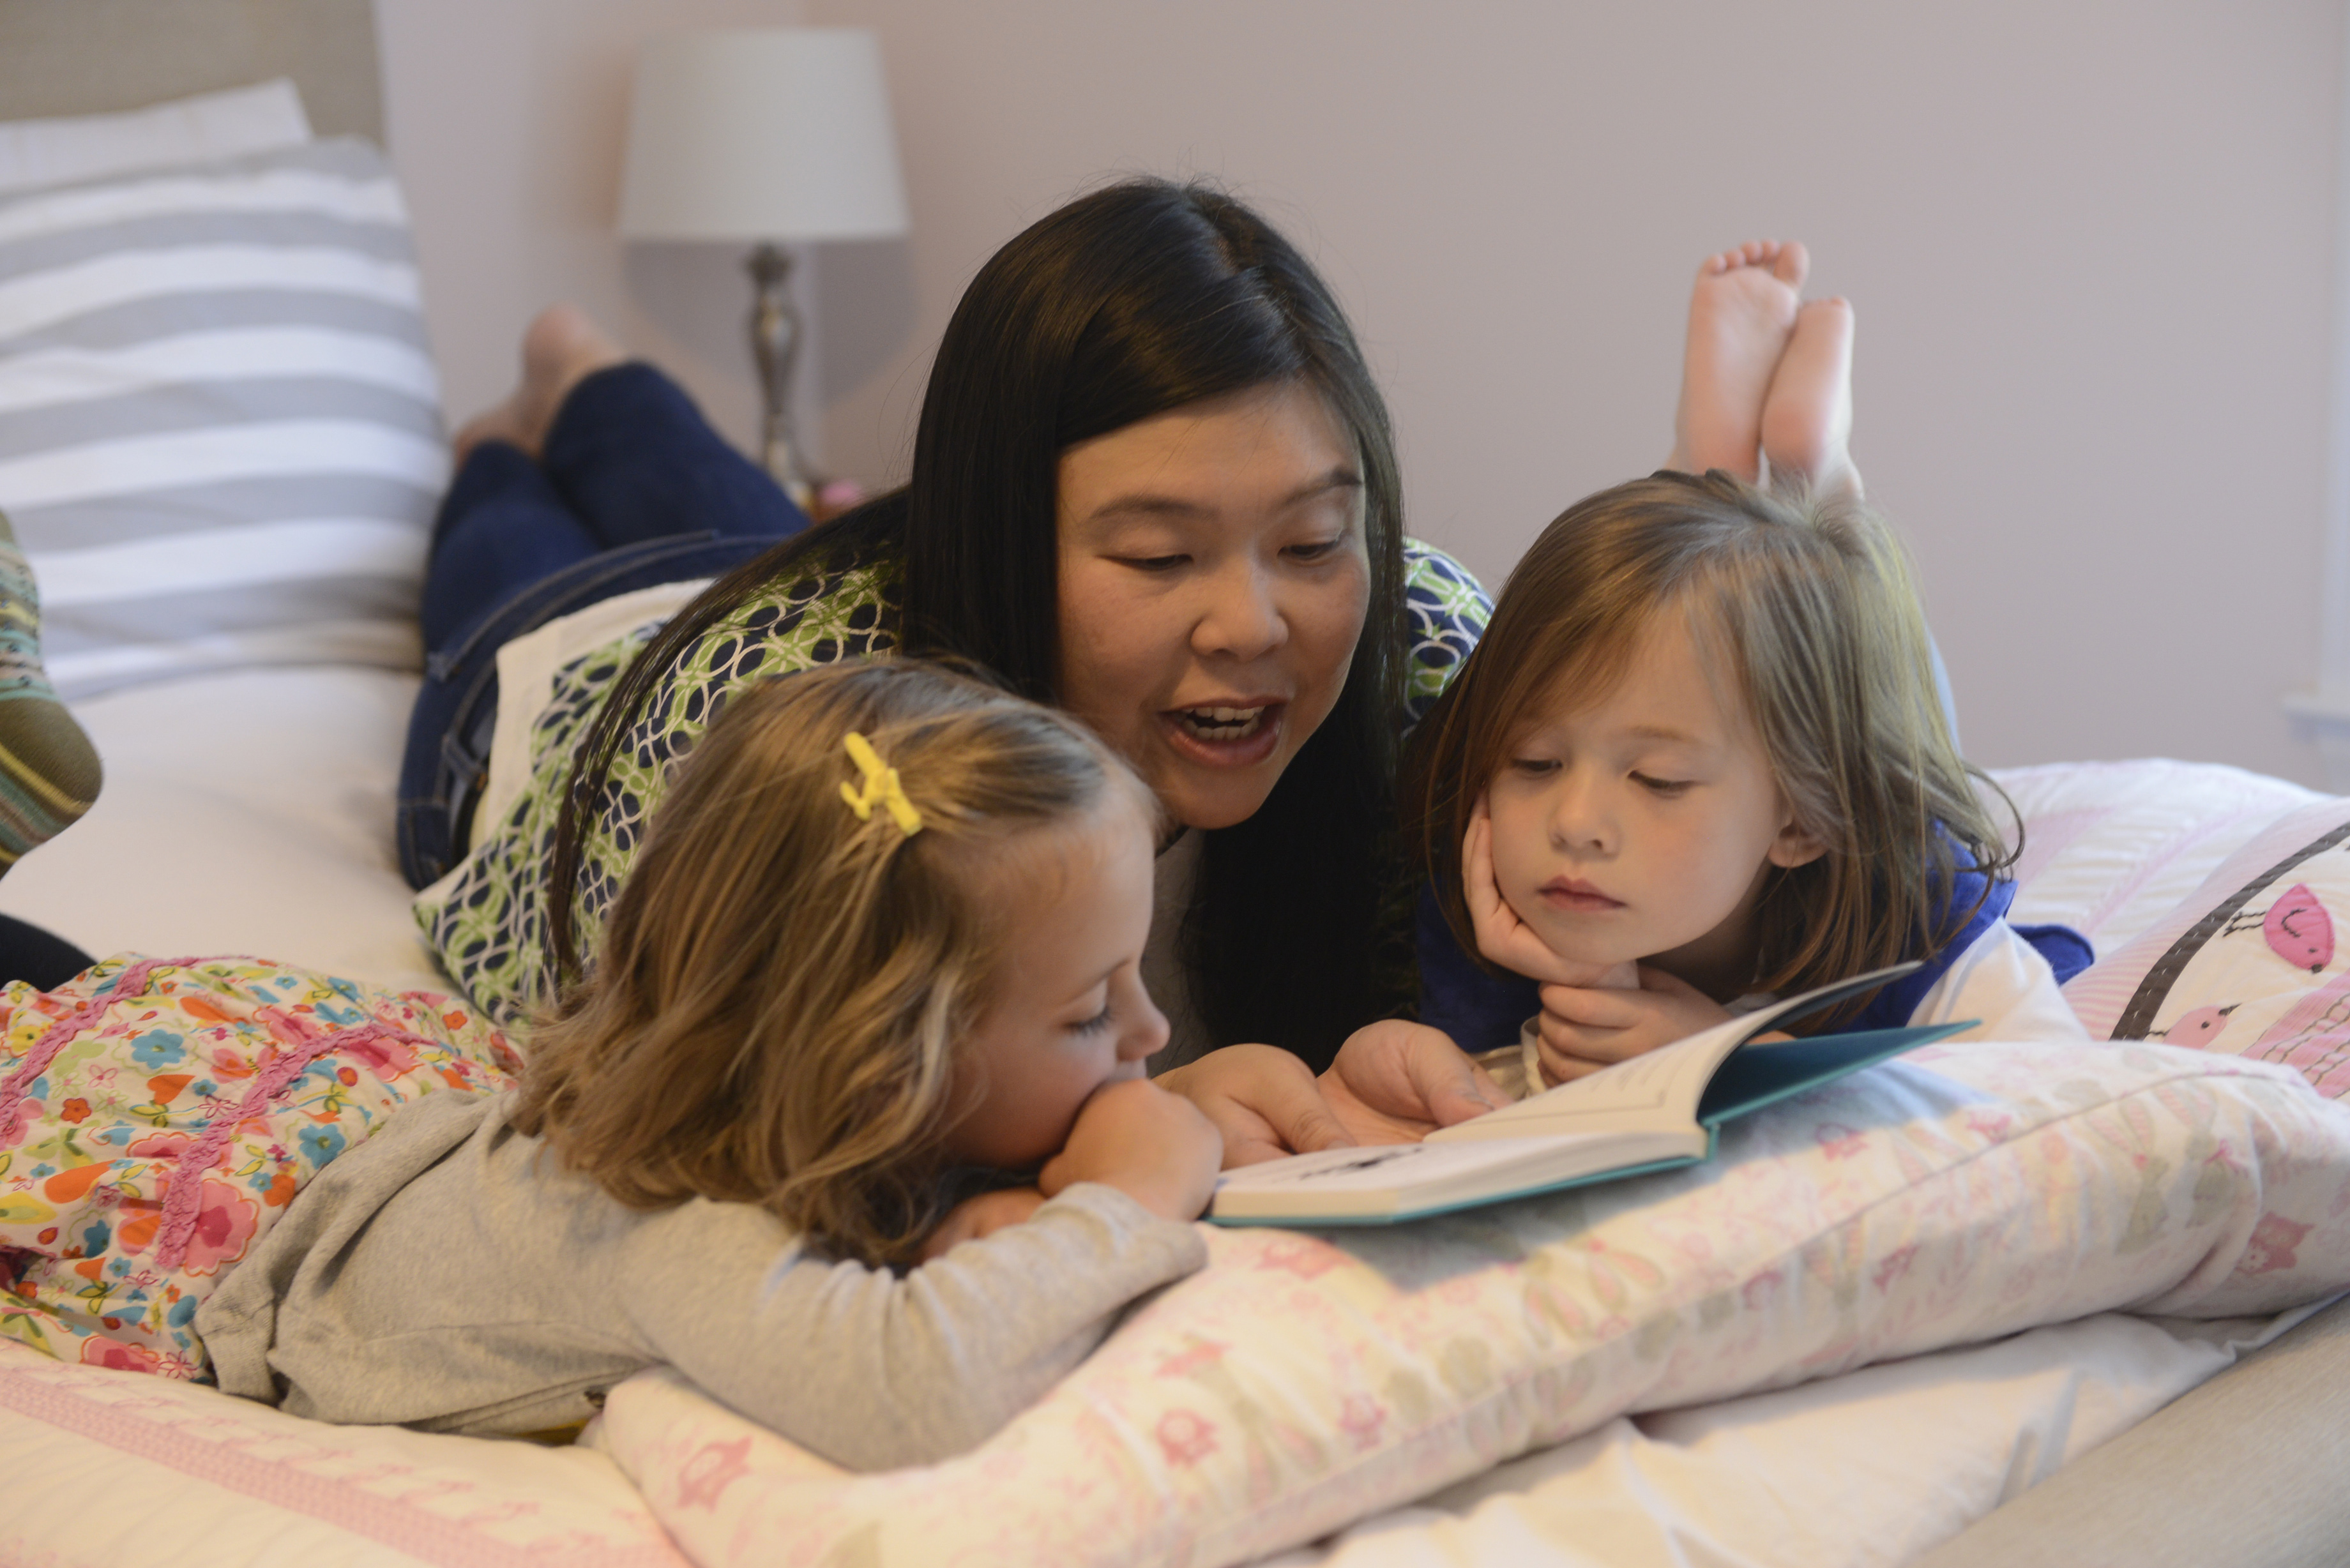 A woman reads to two girls on a bed.